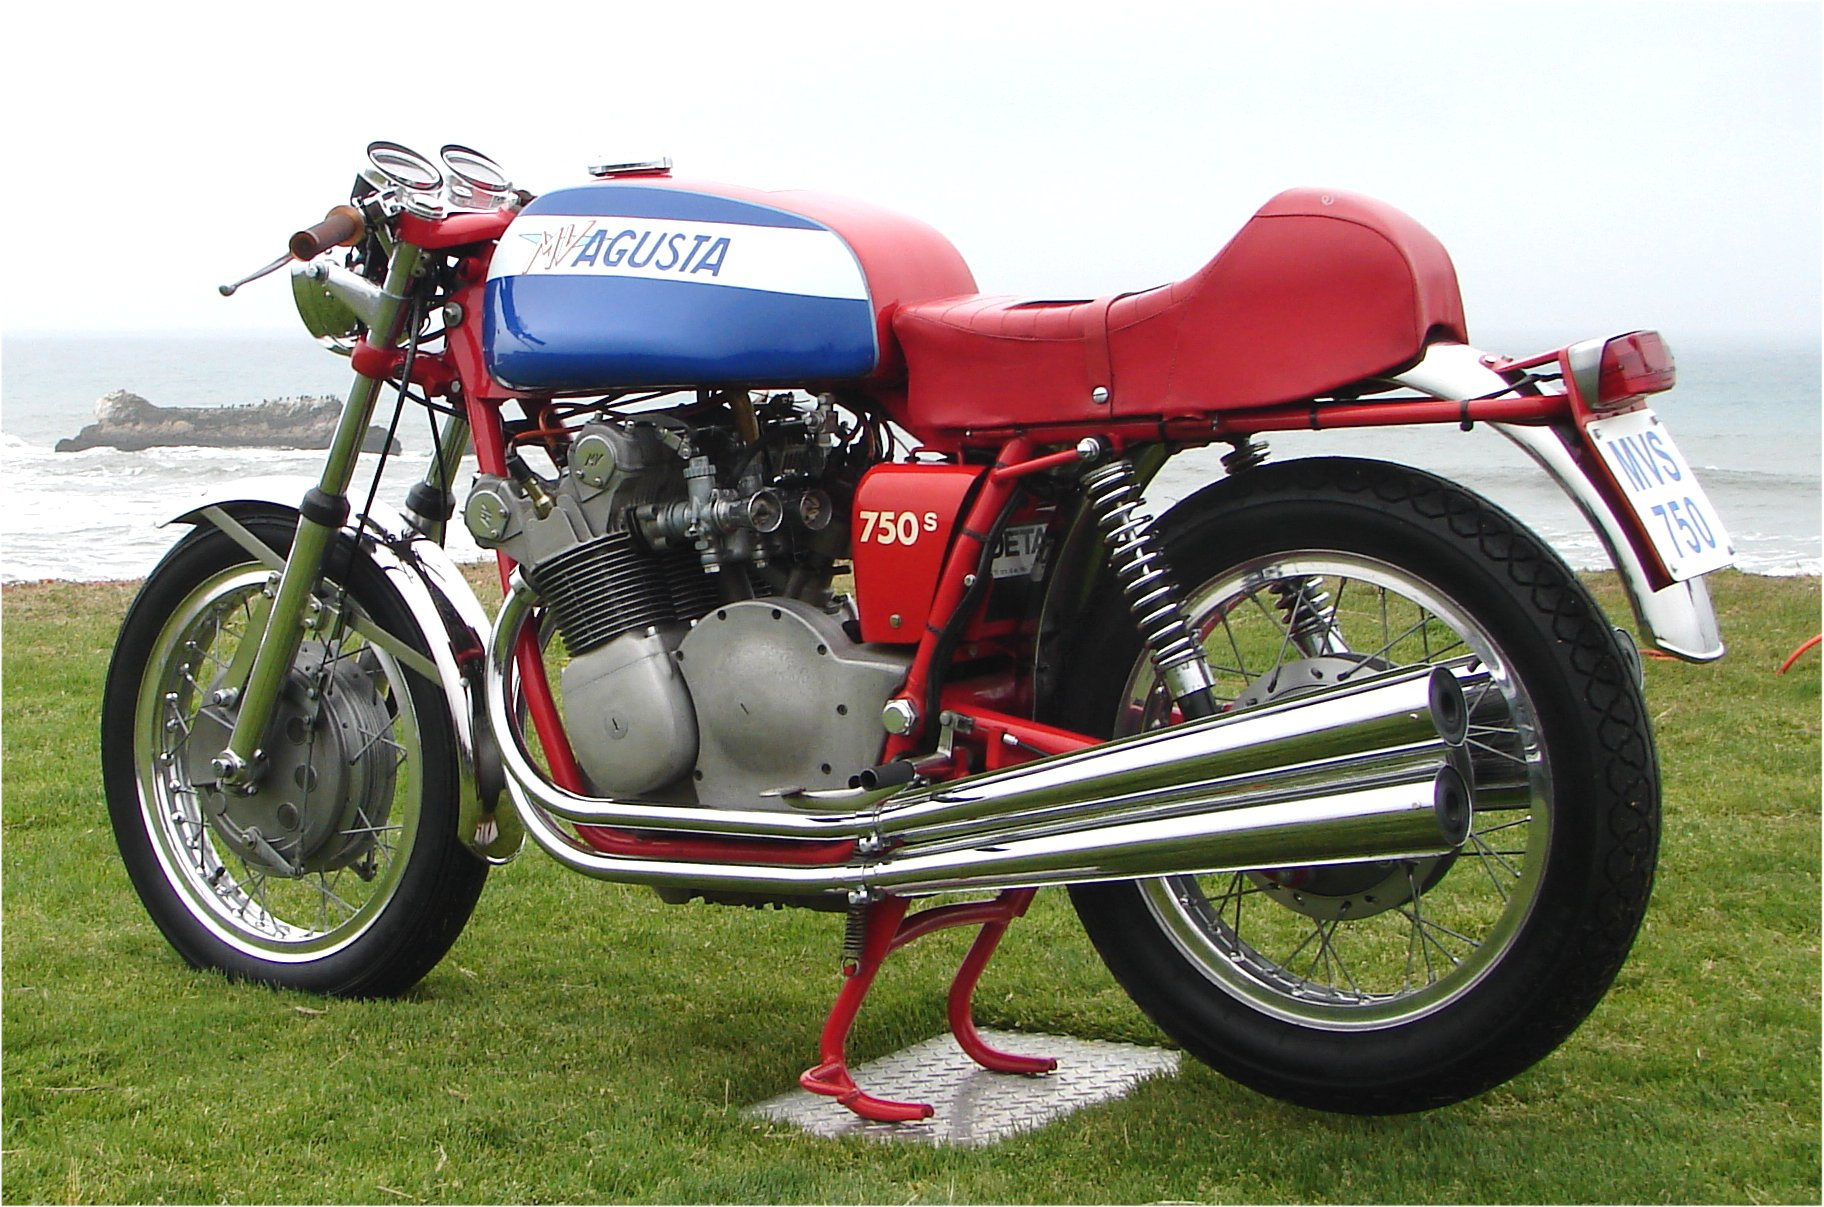 MV Agusta 750 S 1972 images #113238